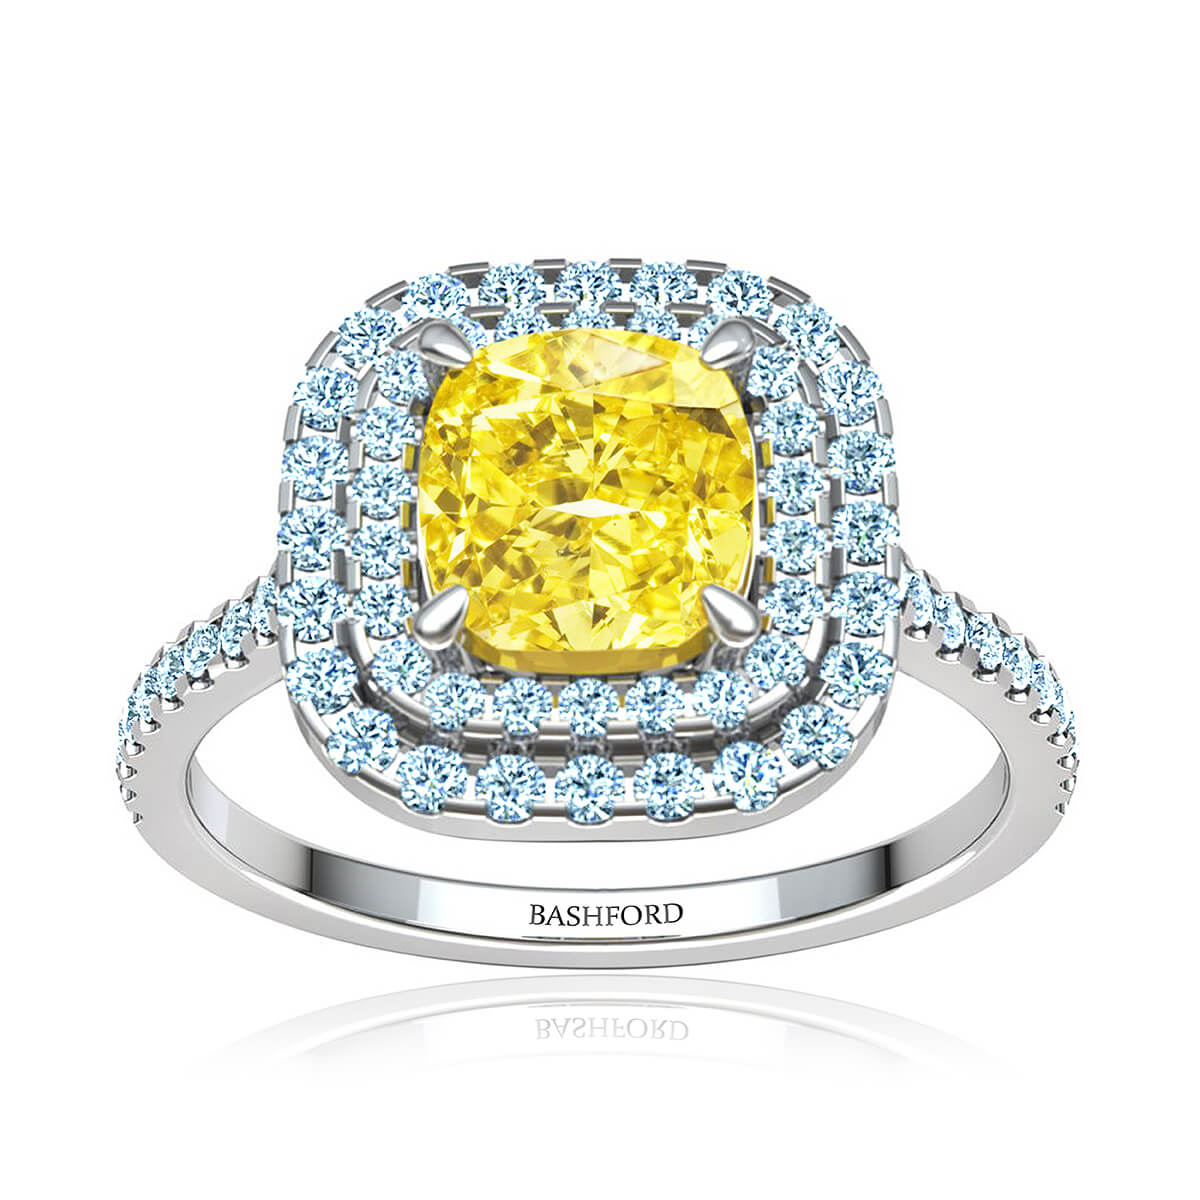 Eloisa Yellow Diamond Ring